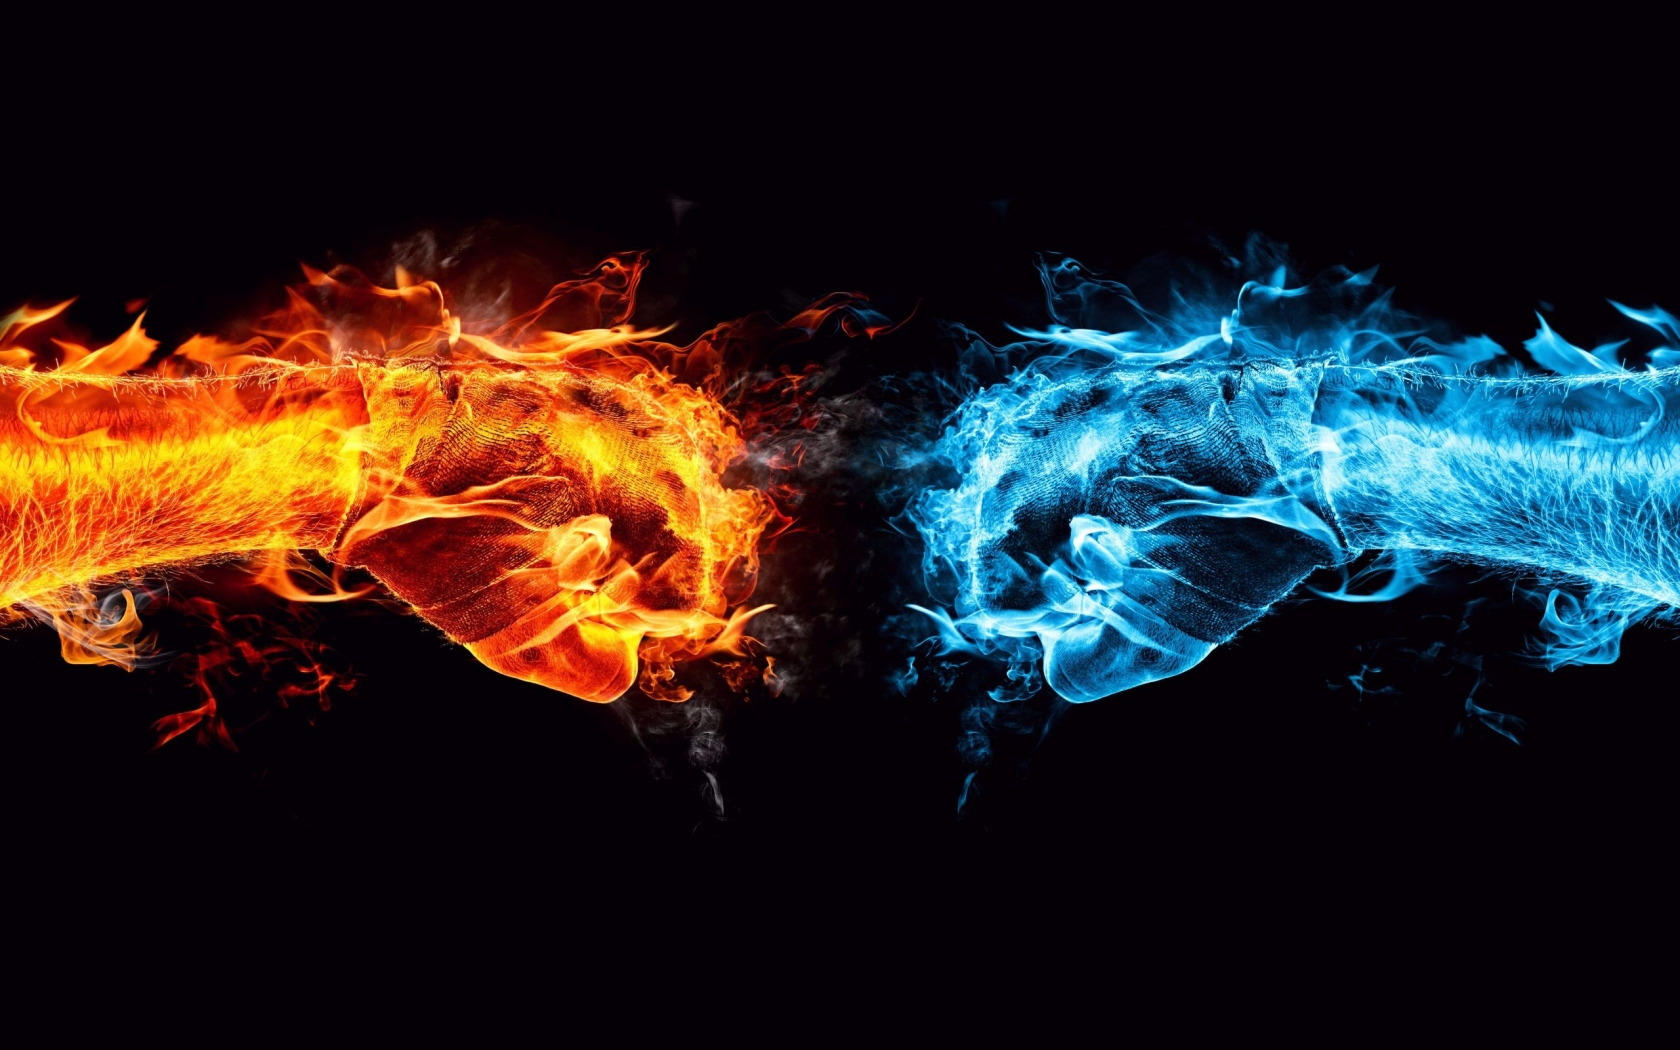 Fire and Ice Conflict for 1680 x 1050 widescreen resolution